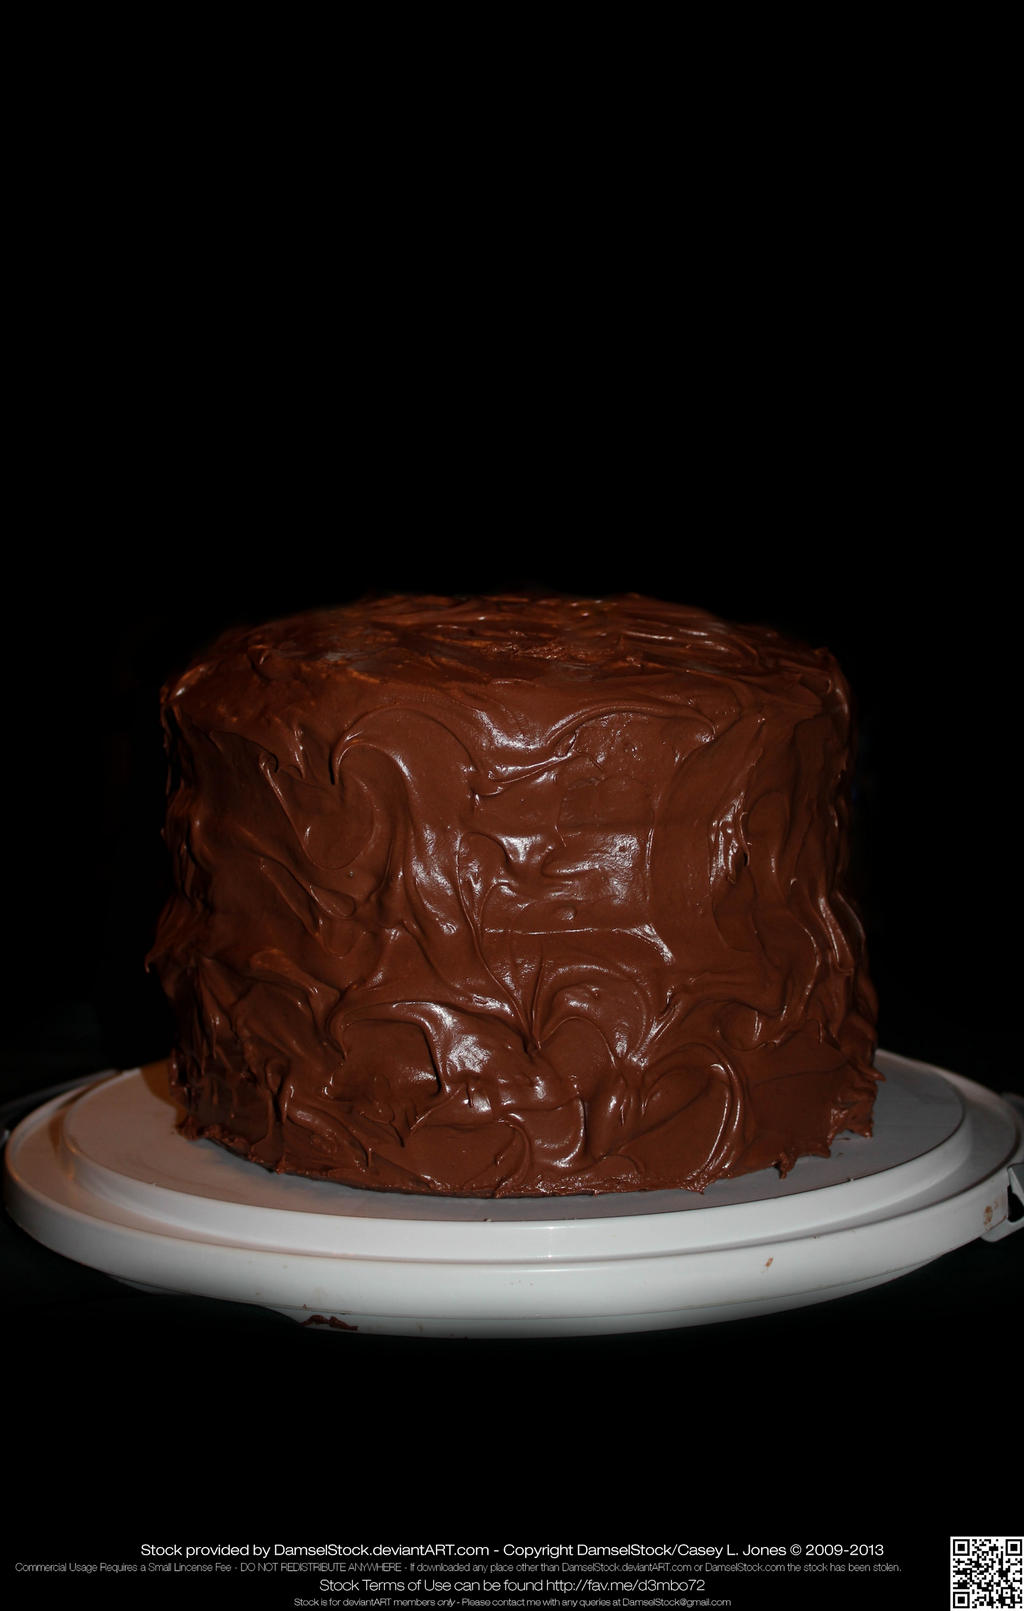 Images Of Round Chocolate Cake : Four Layered Round Chocolate Cake by DamselStock on DeviantArt